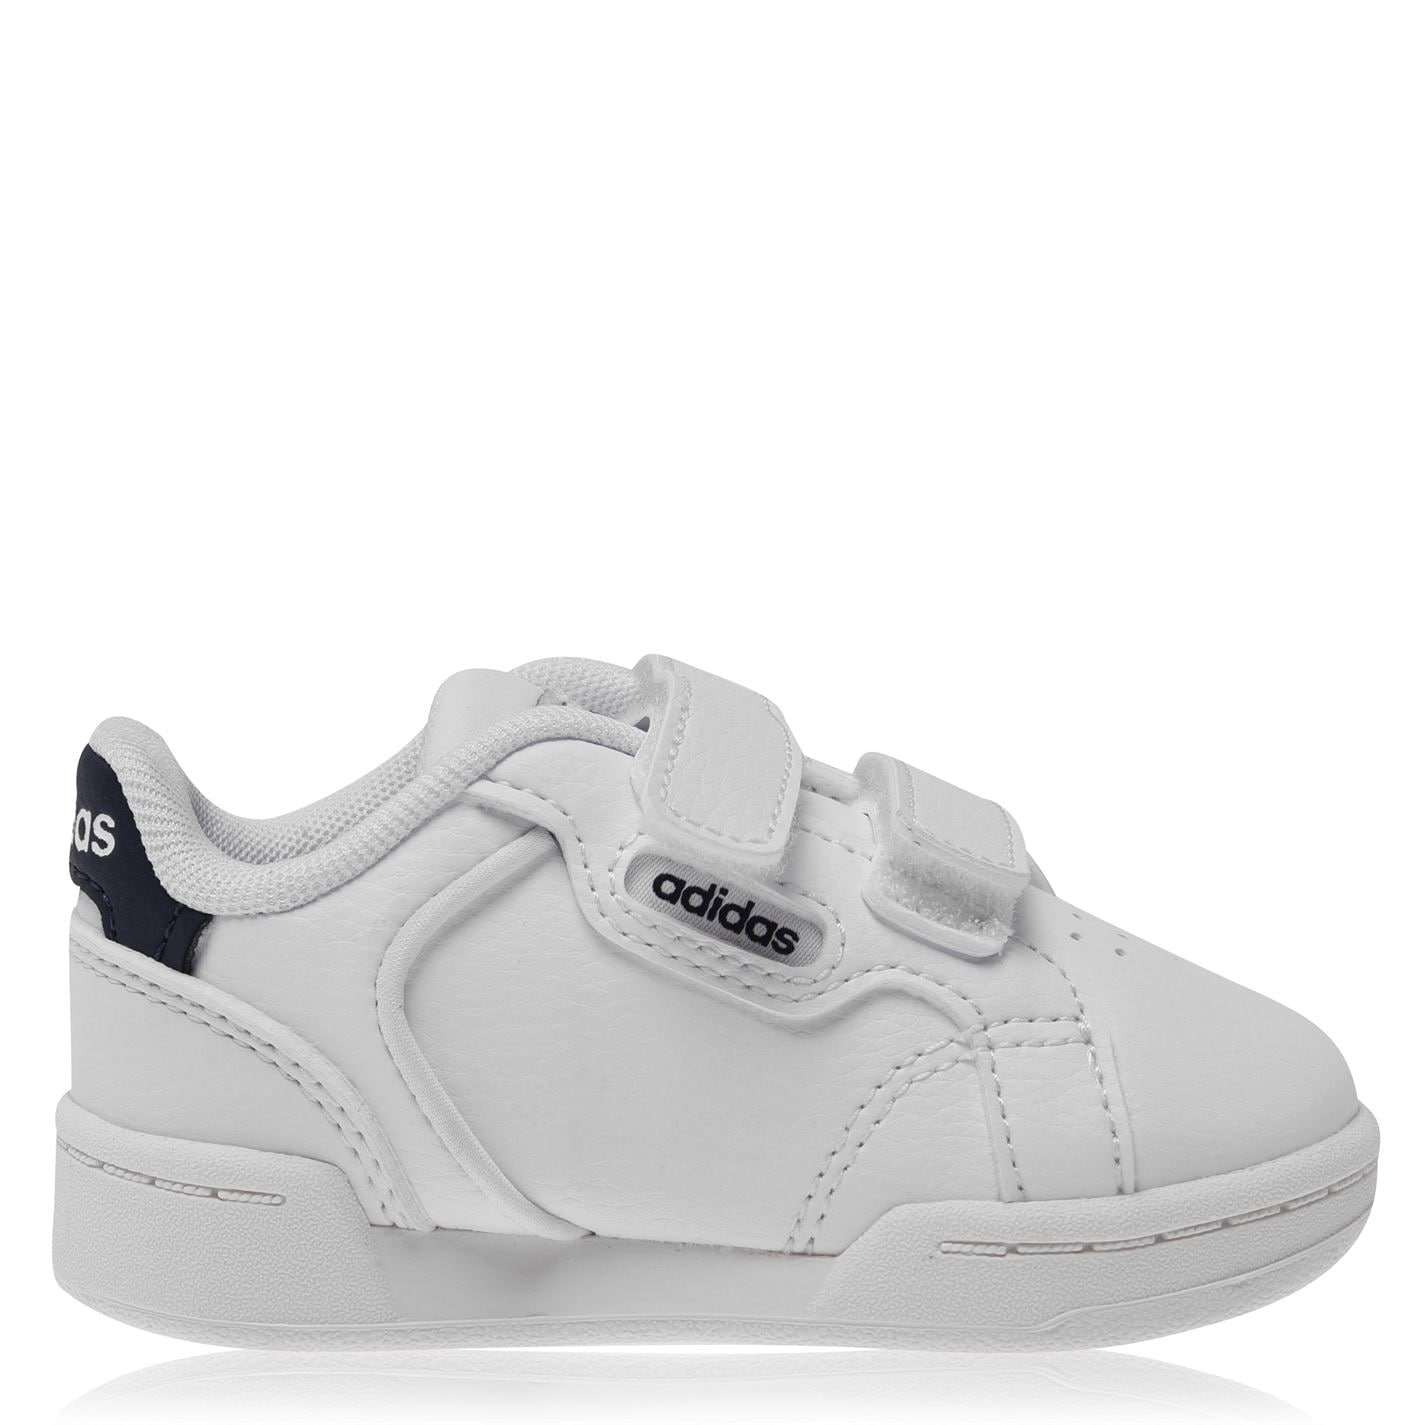 adidas Roguera Court Trainers Infant Boys White/Navy